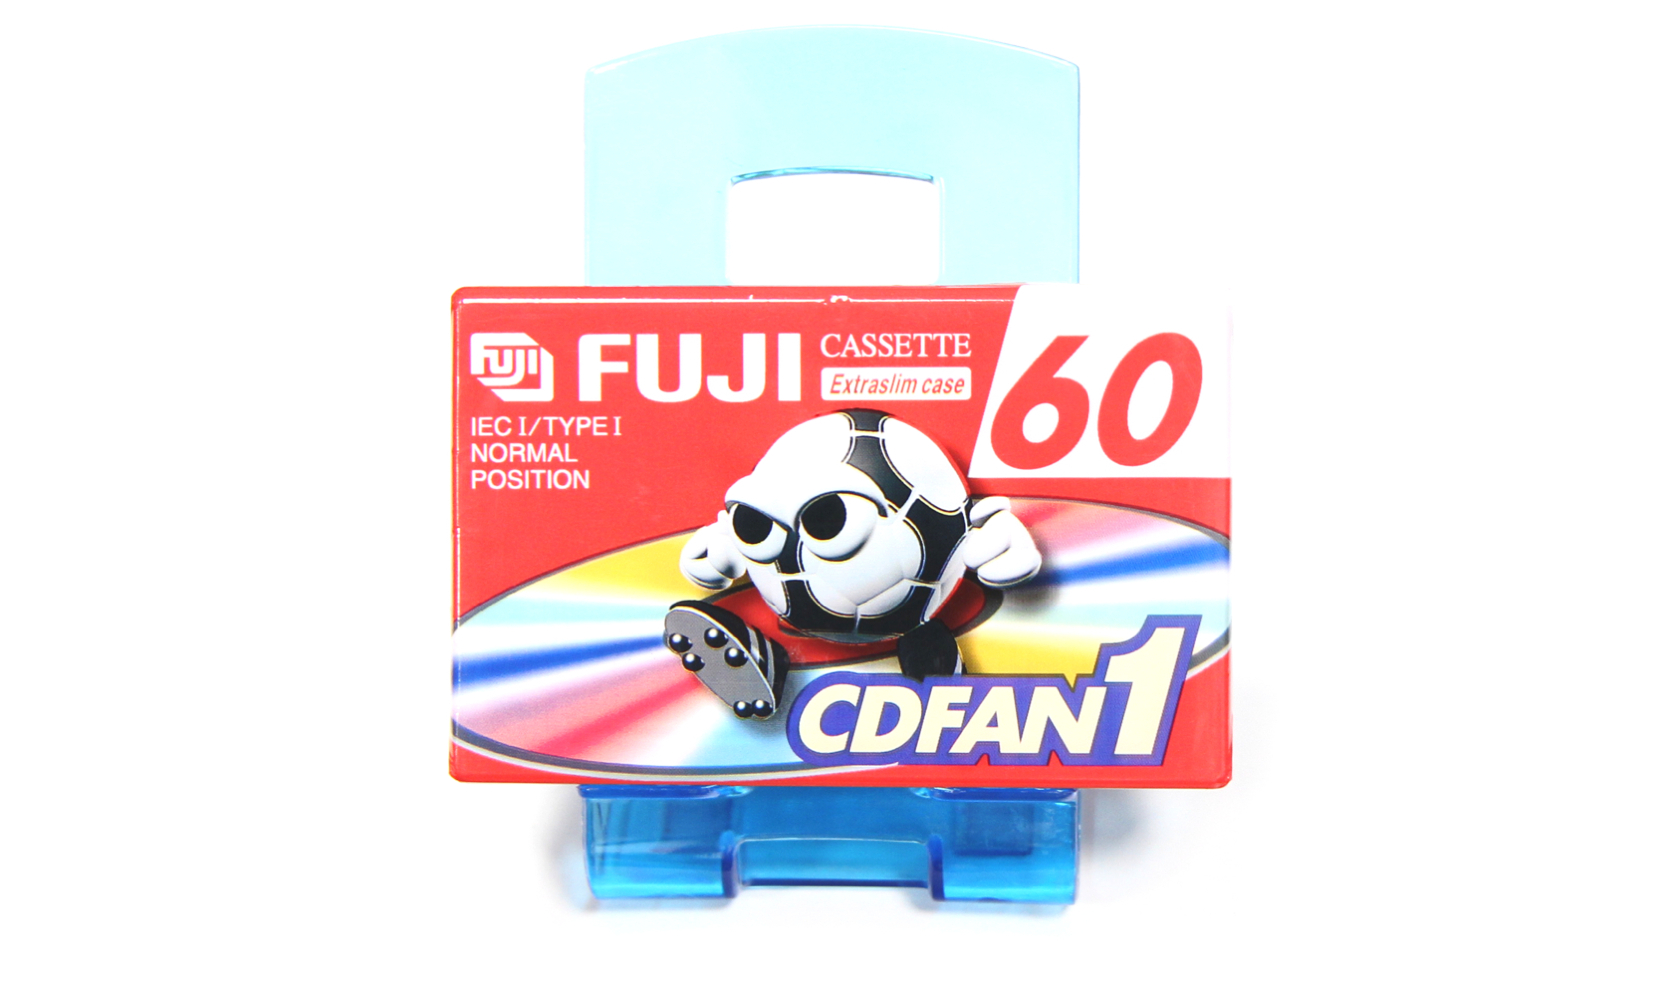 FUJI CDFAN1-60 Position Normal